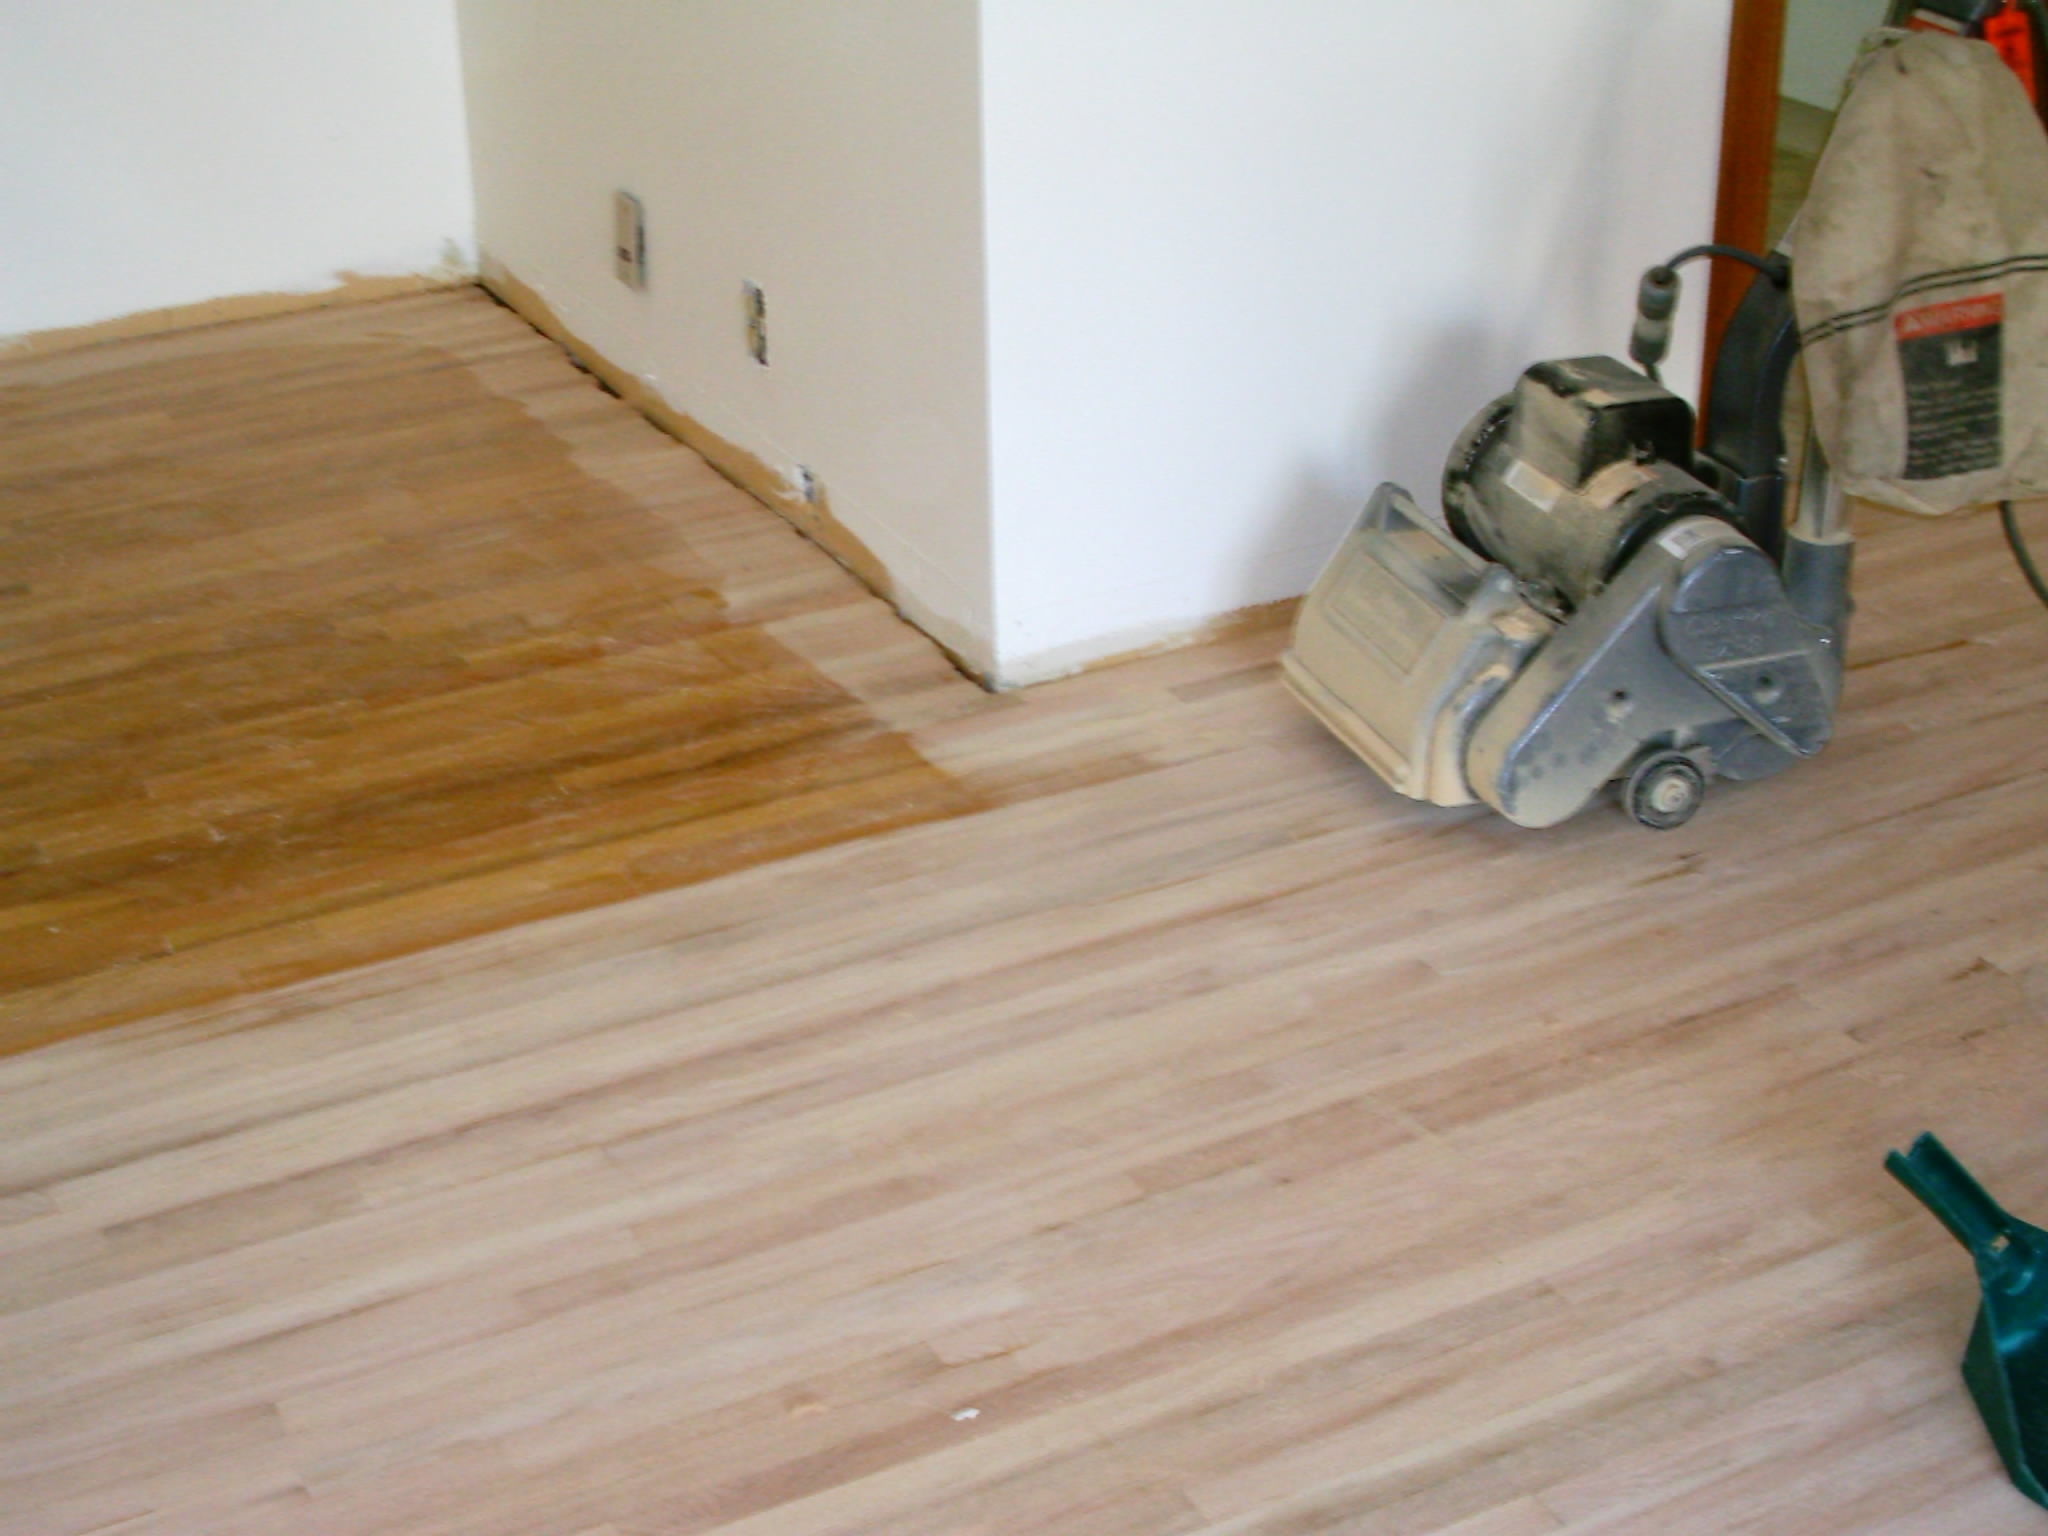 Sander For Wooden Floors